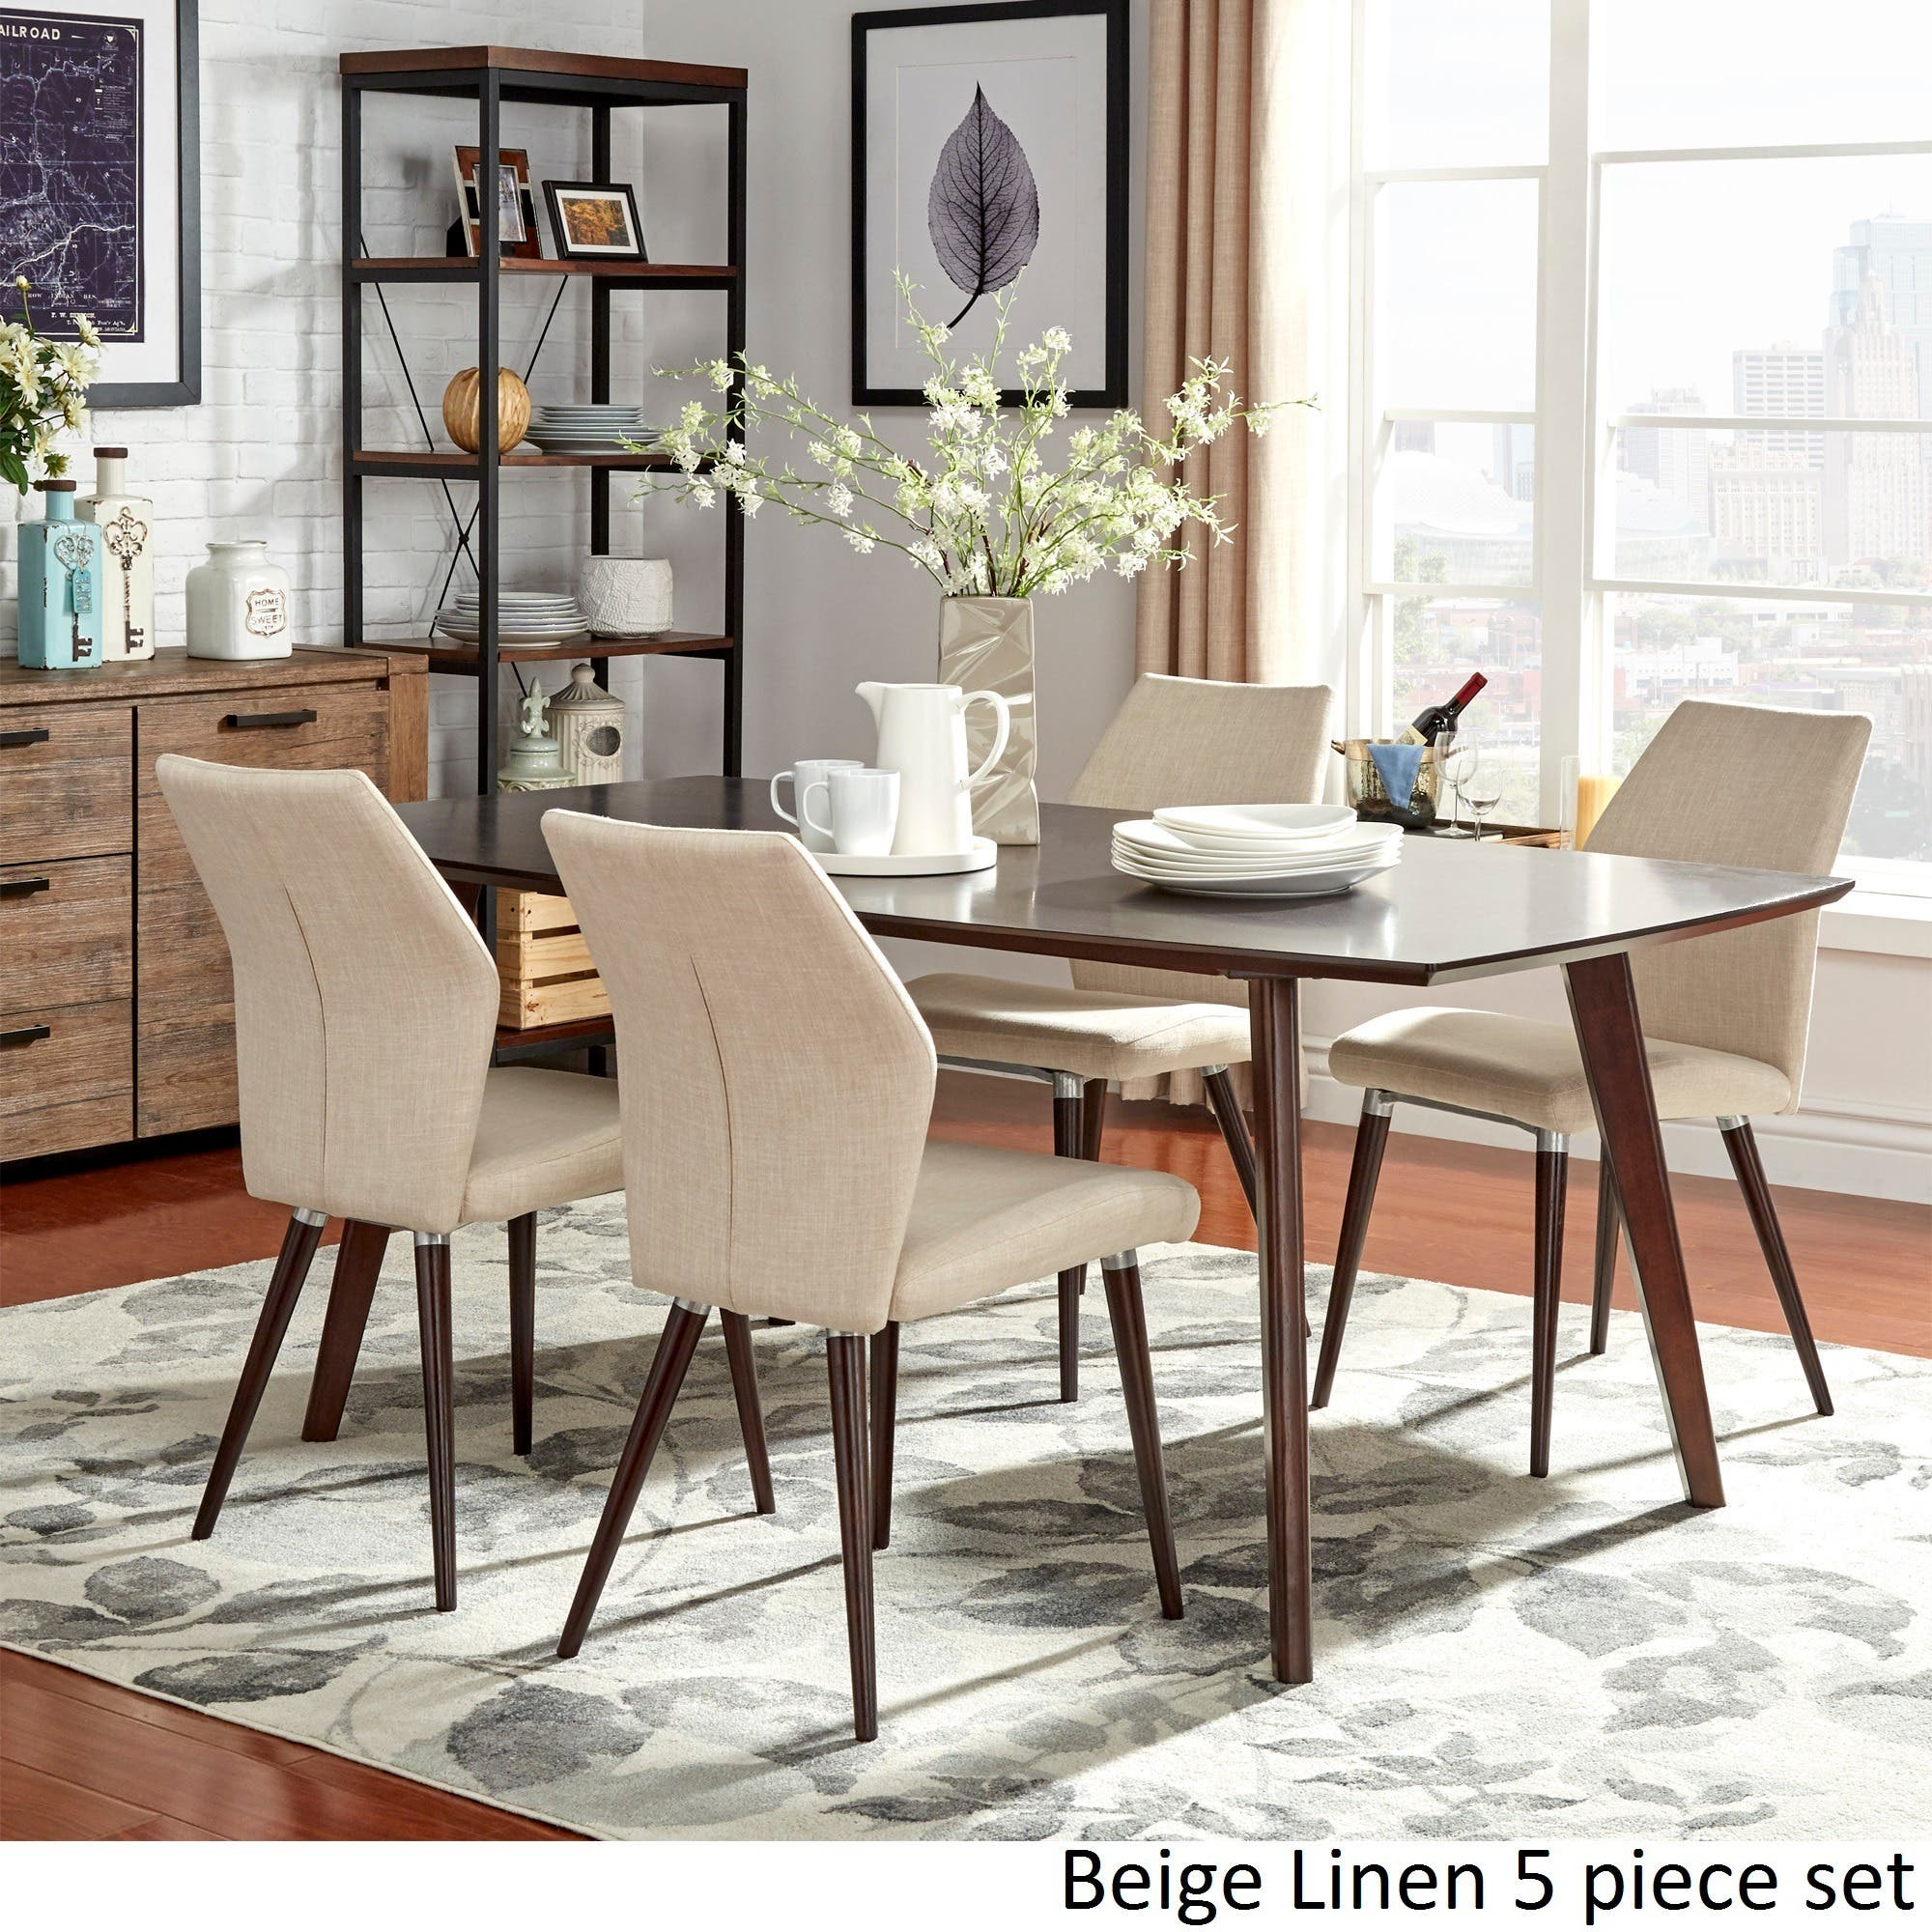 Kitchen dining room sets for less for Living room furniture 0 finance